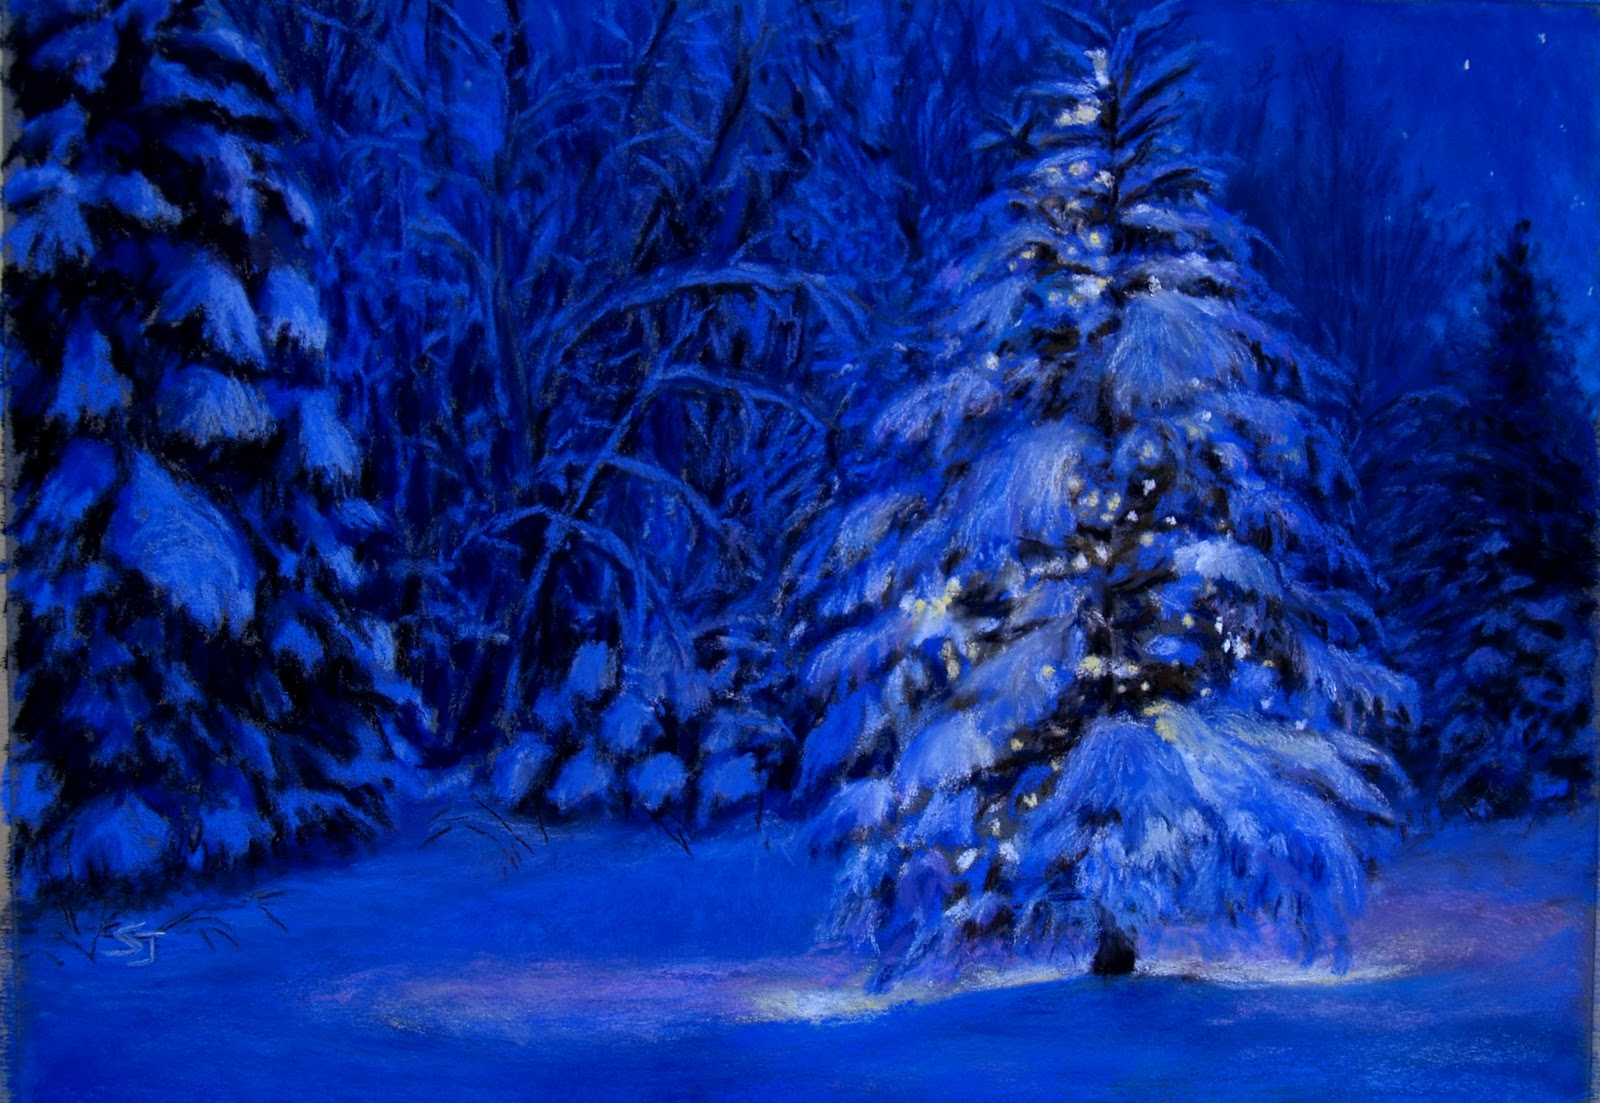 Christmas Tree Natural Wallpapers Christmas Tree Nature Wallpapers 1600x1103